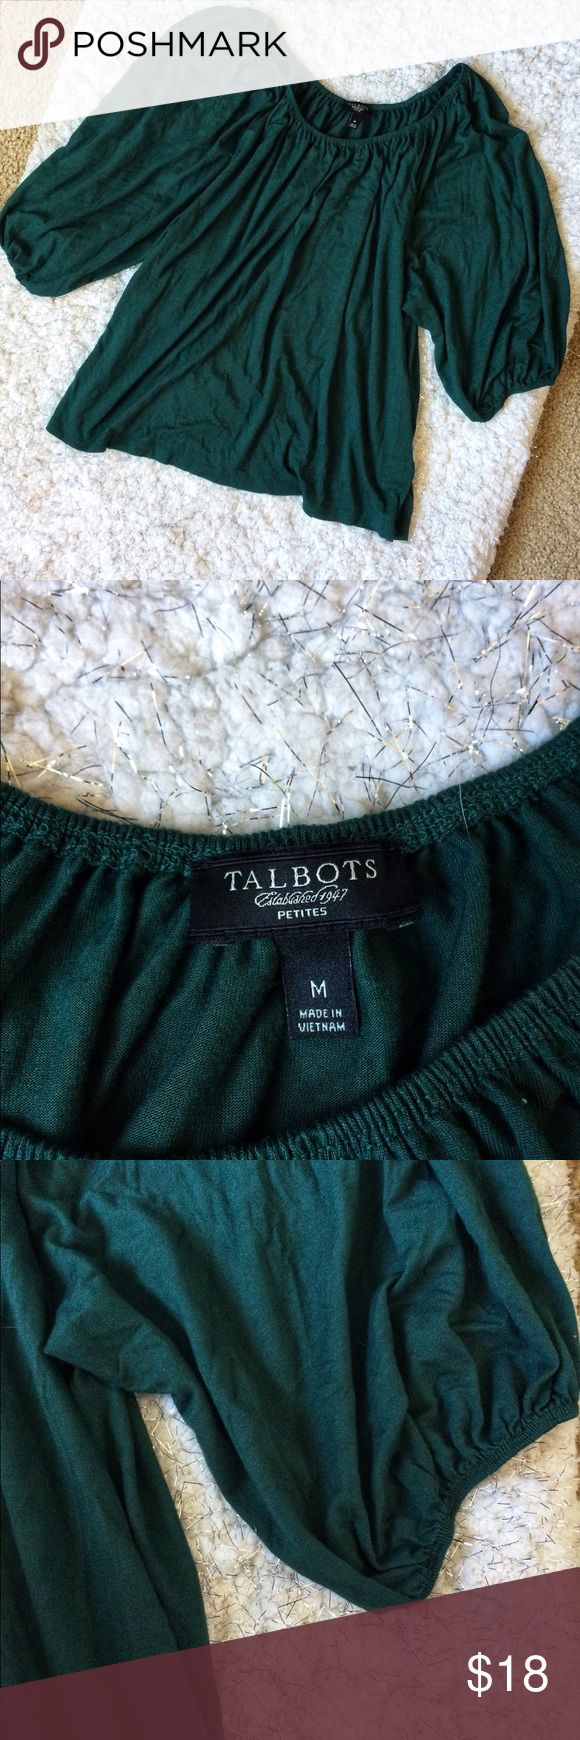 Talbots Petite Medium Green Slouchy Top Super soft comfy material - Preloved - Size medium - Talbots Tops Blouses